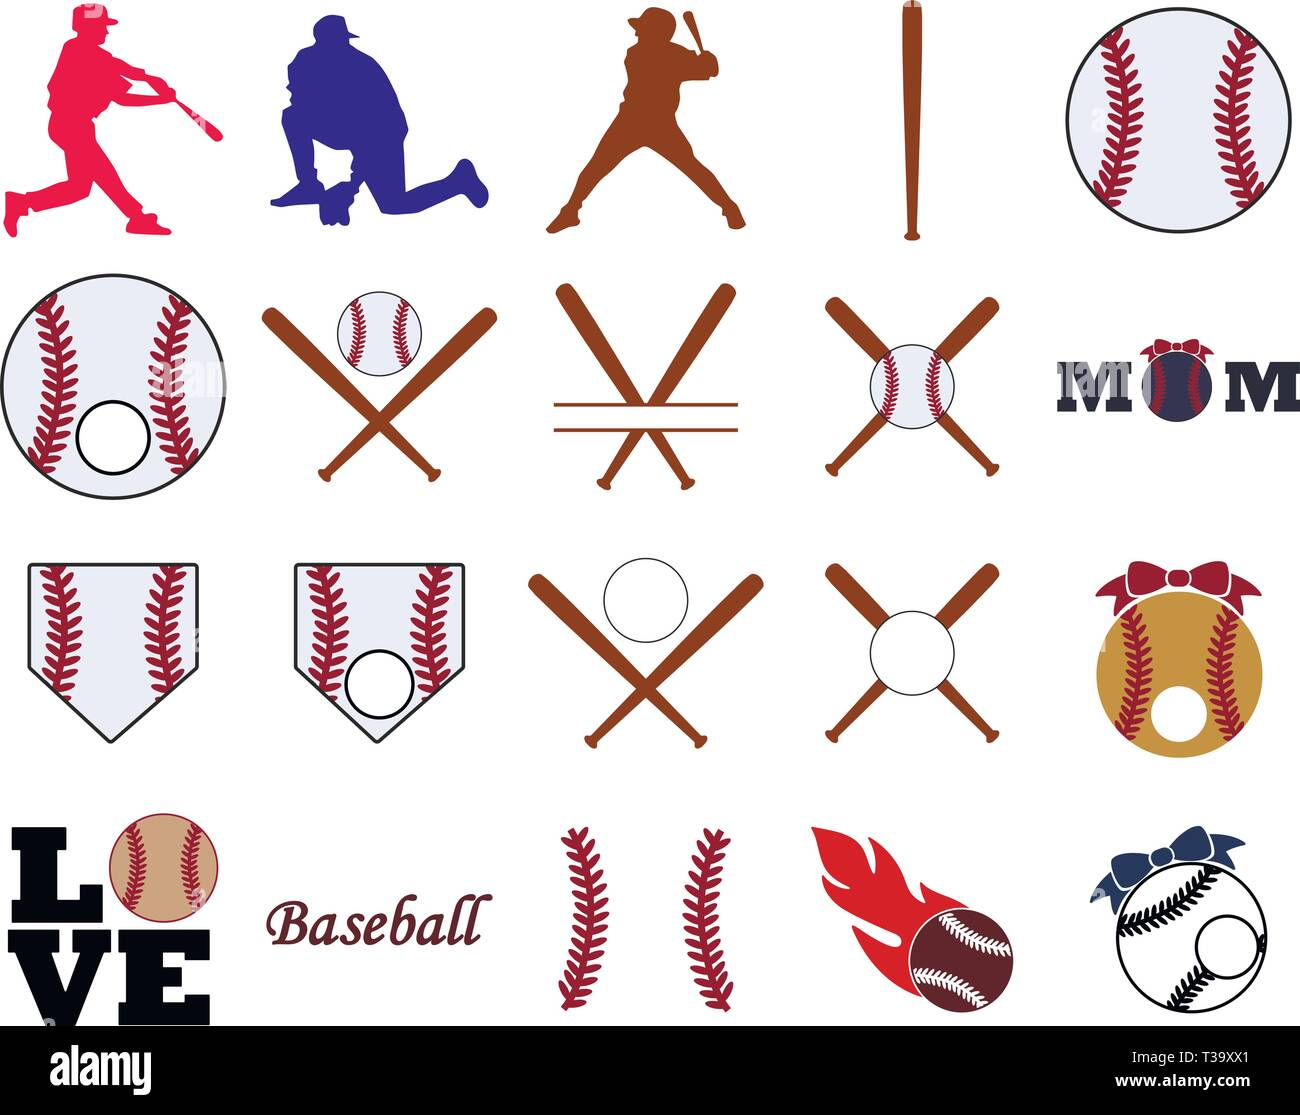 hight resolution of collection of baseball illustrations stock image